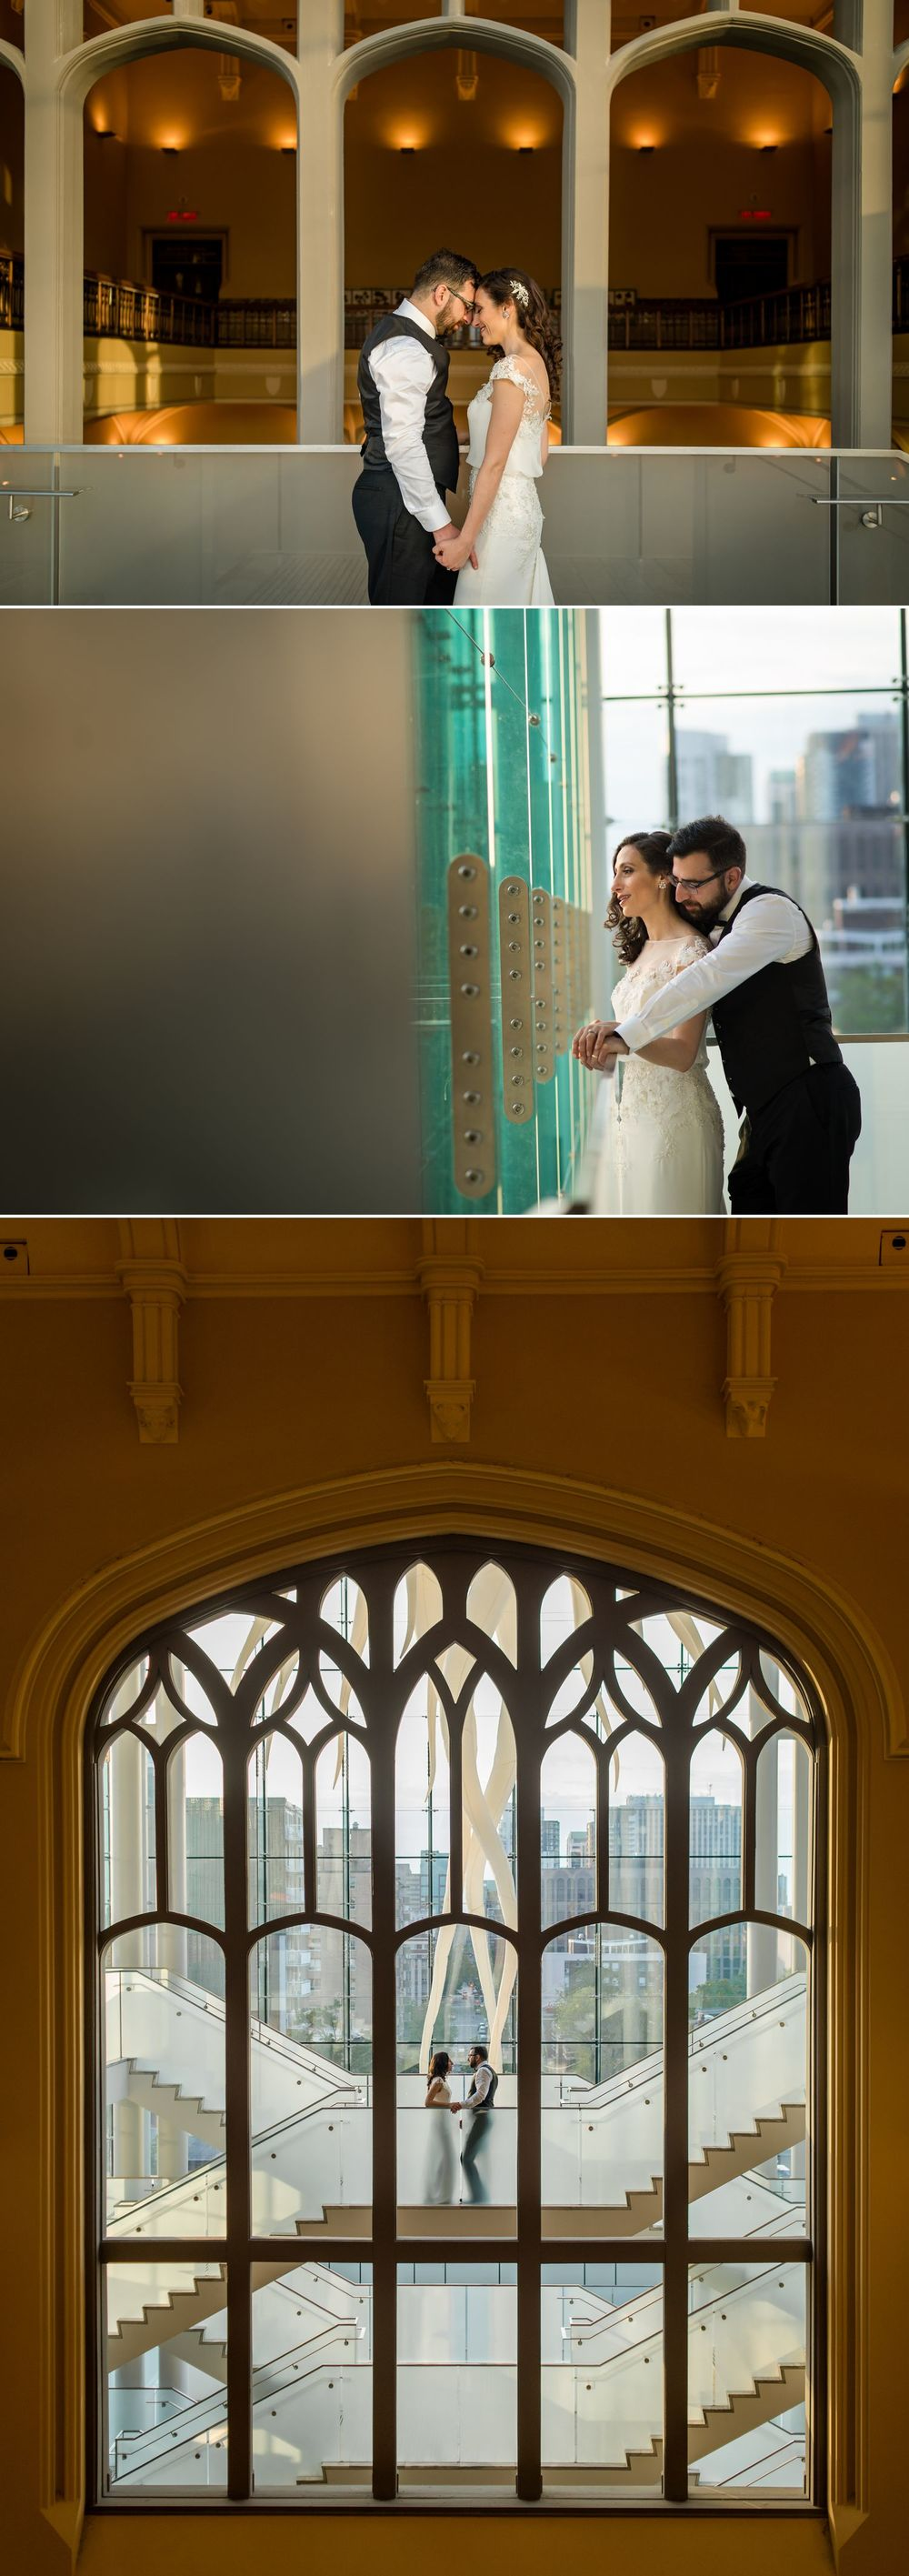 Wedding portraits at the Museum of Nature, Ottawa